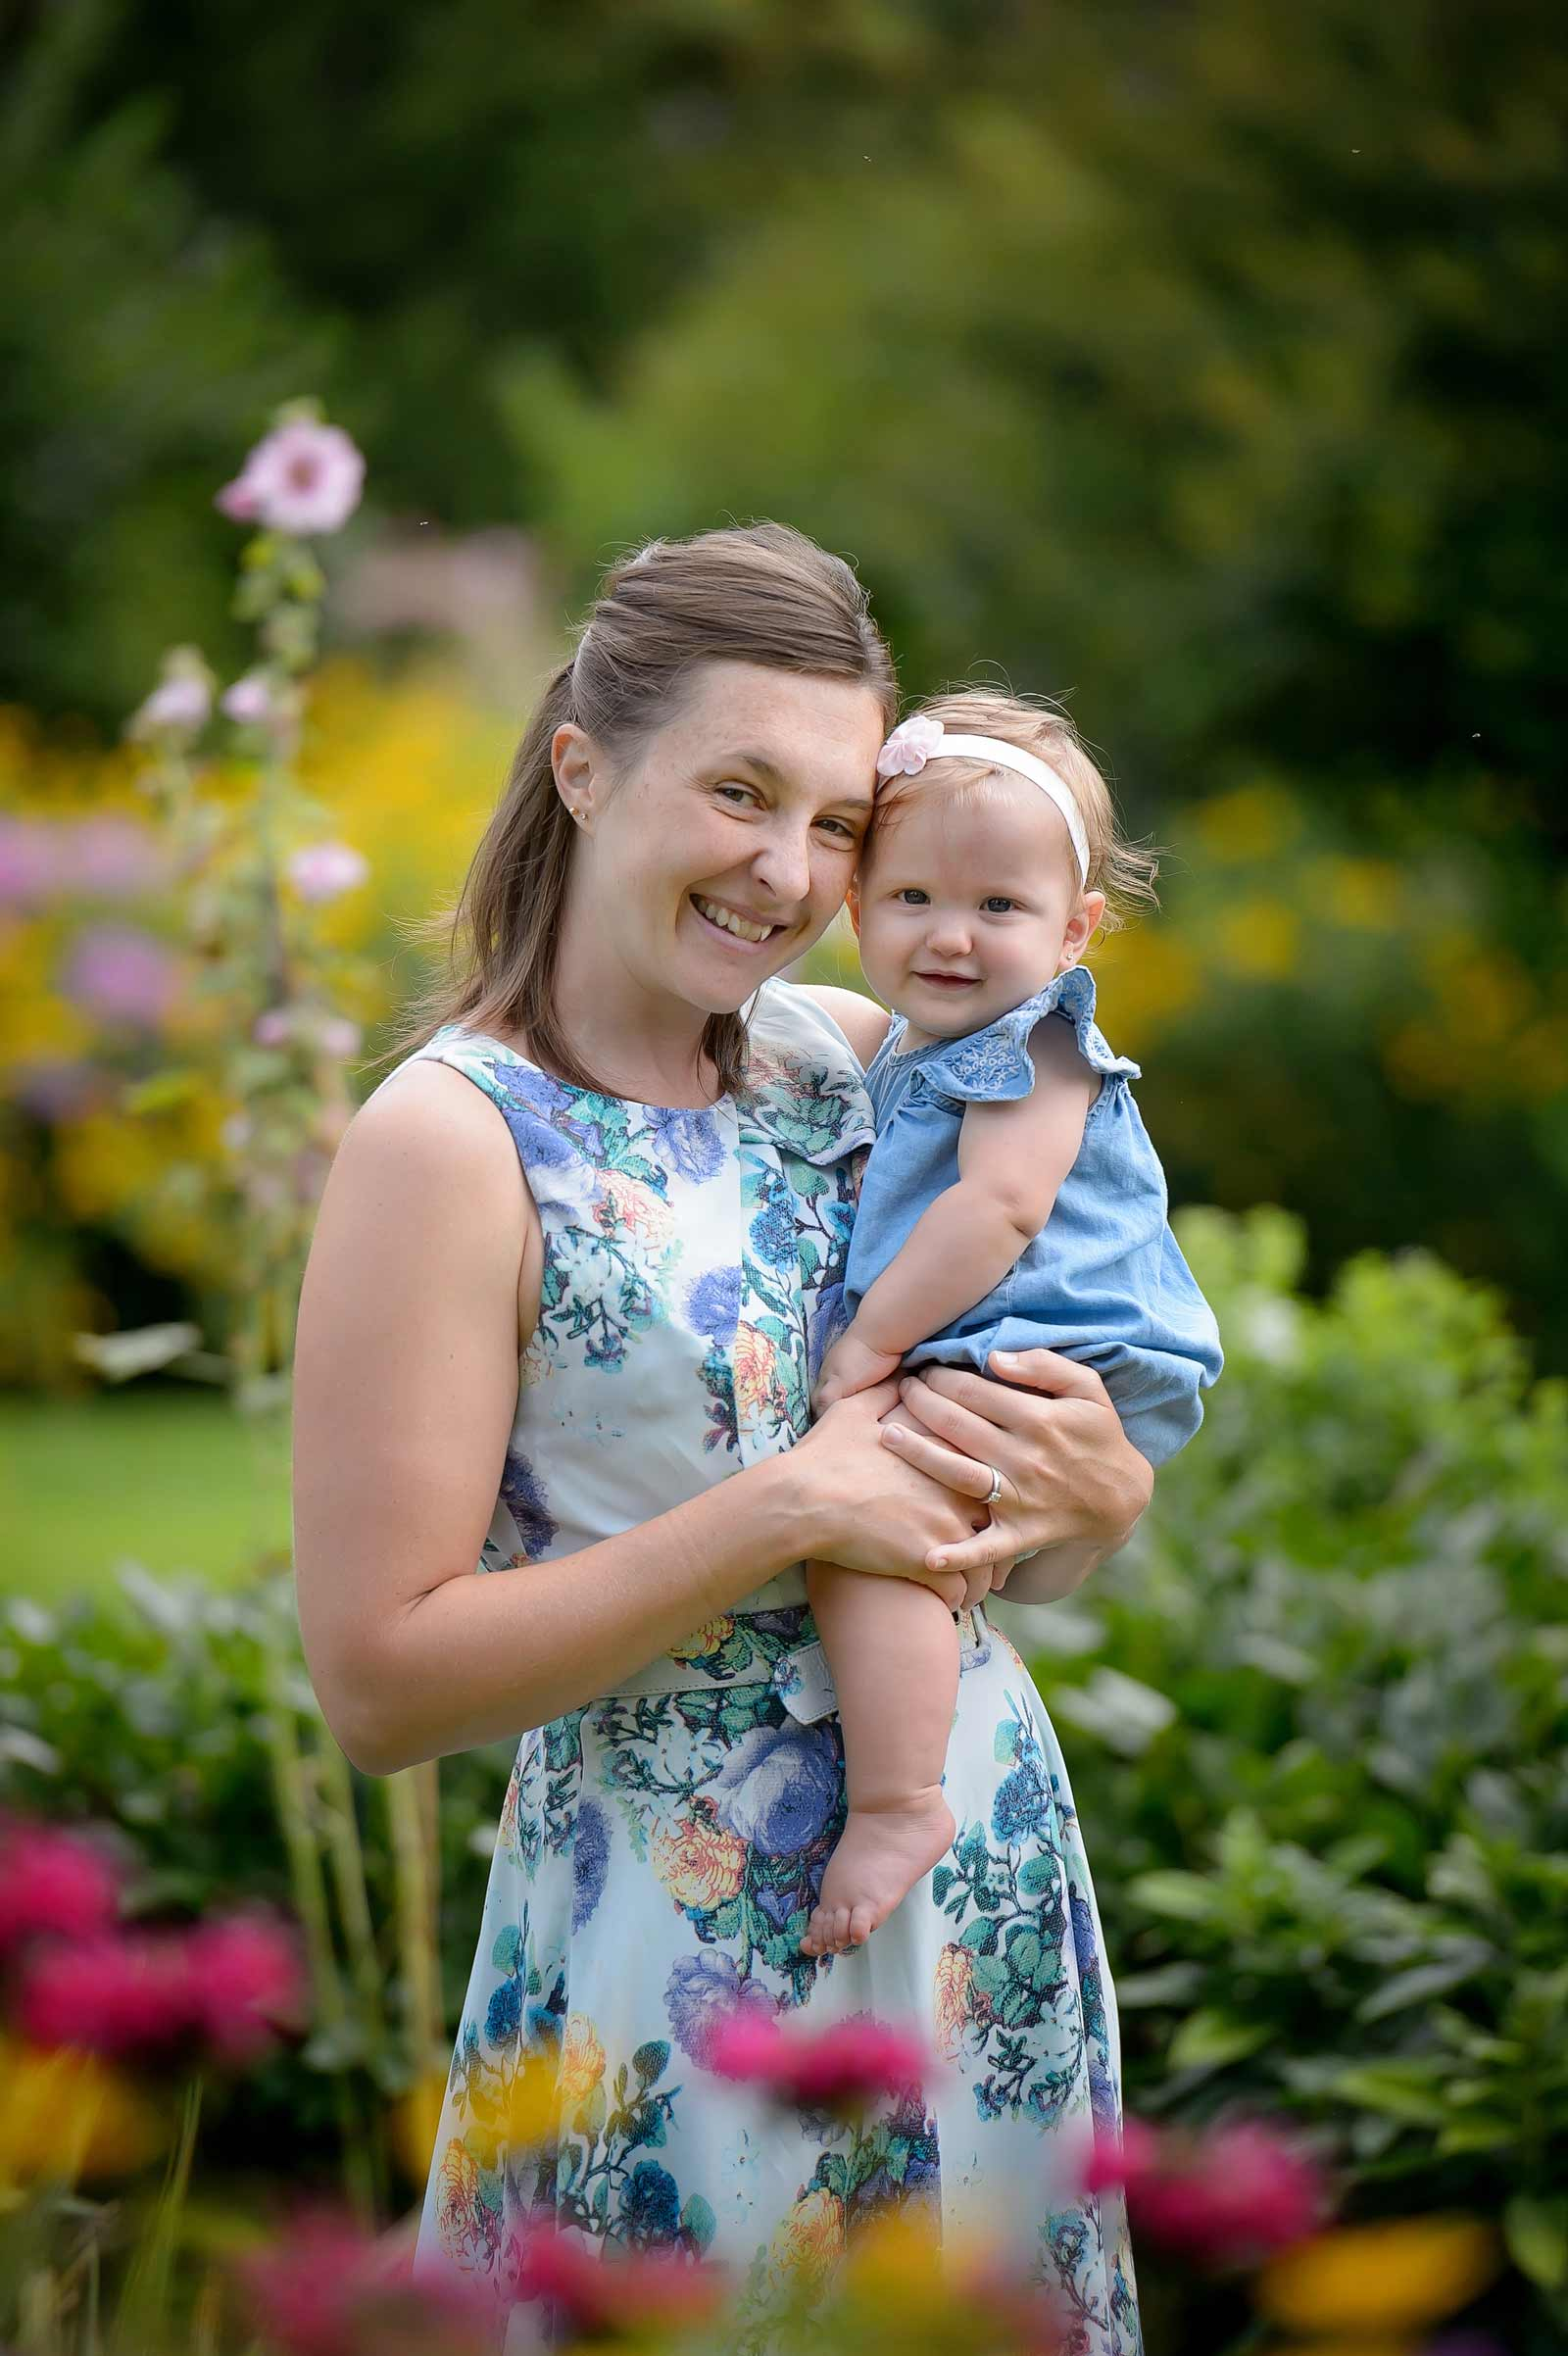 Mommy and baby girl at Maplelawn gardens in the summer